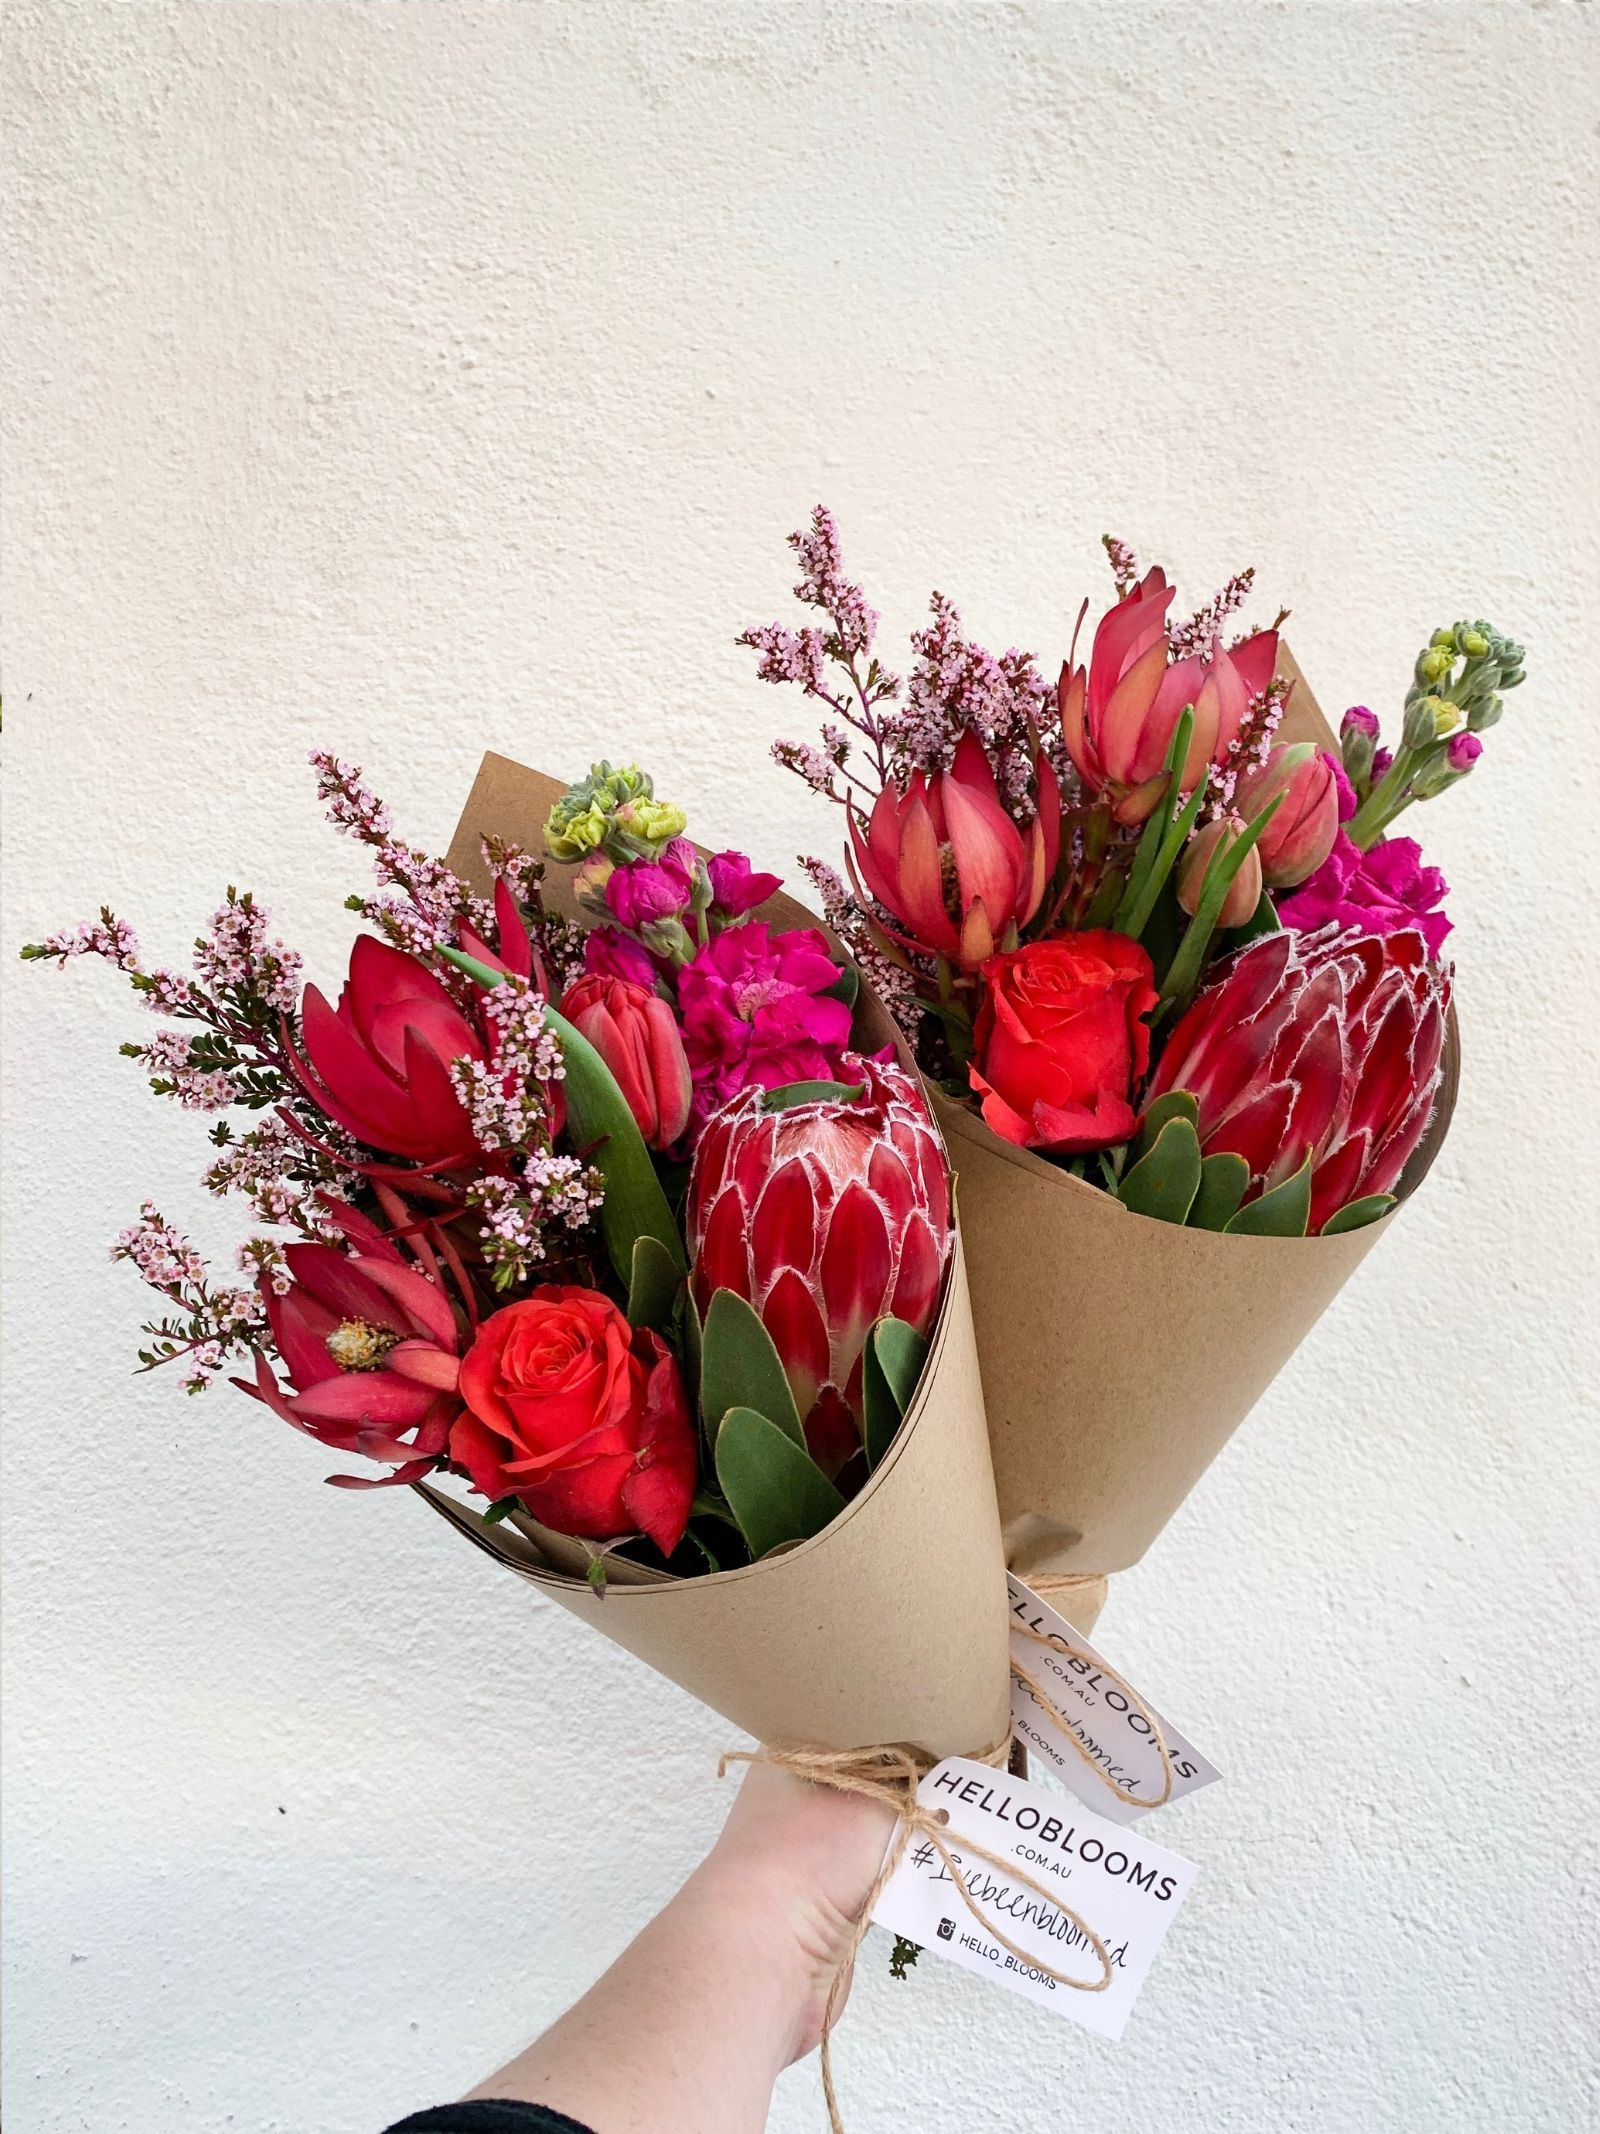 Our Daily Posy Is All About The Romance